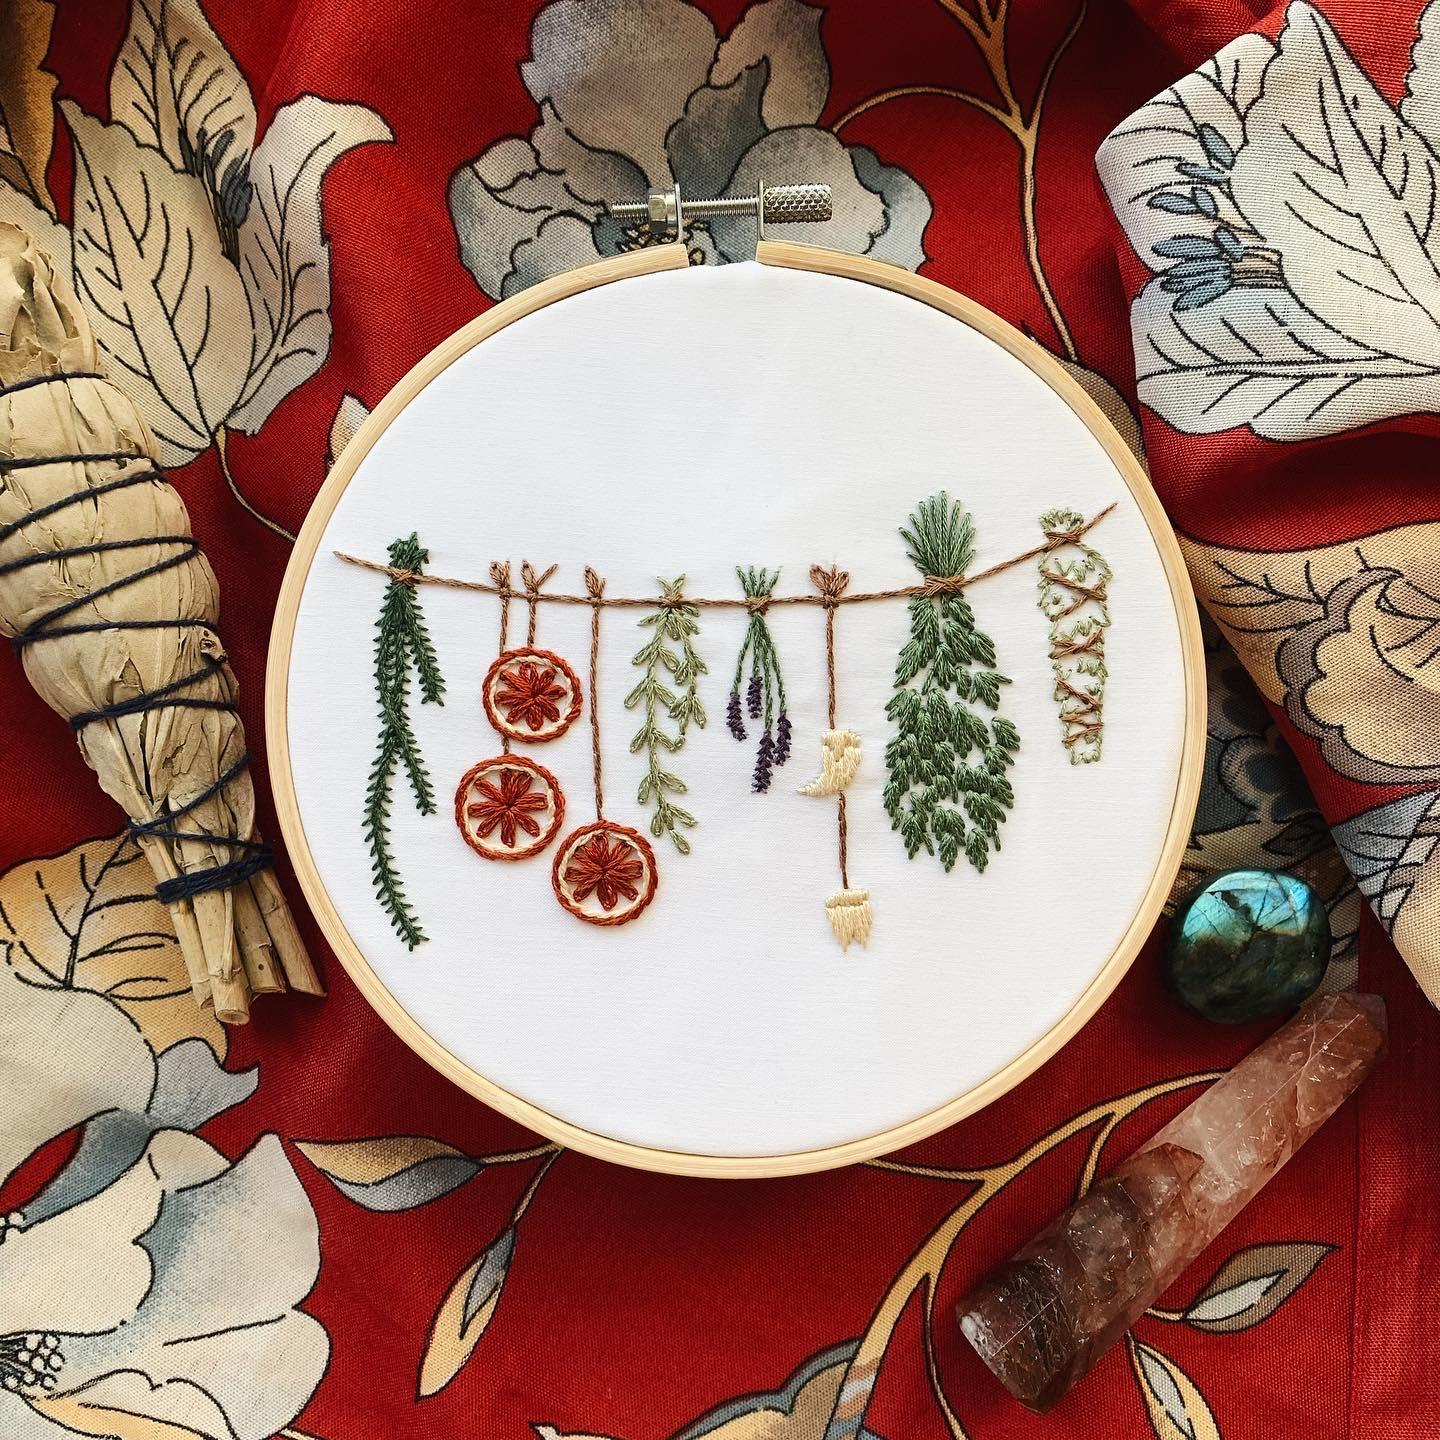 Witch's Pantry Embroidery Kit